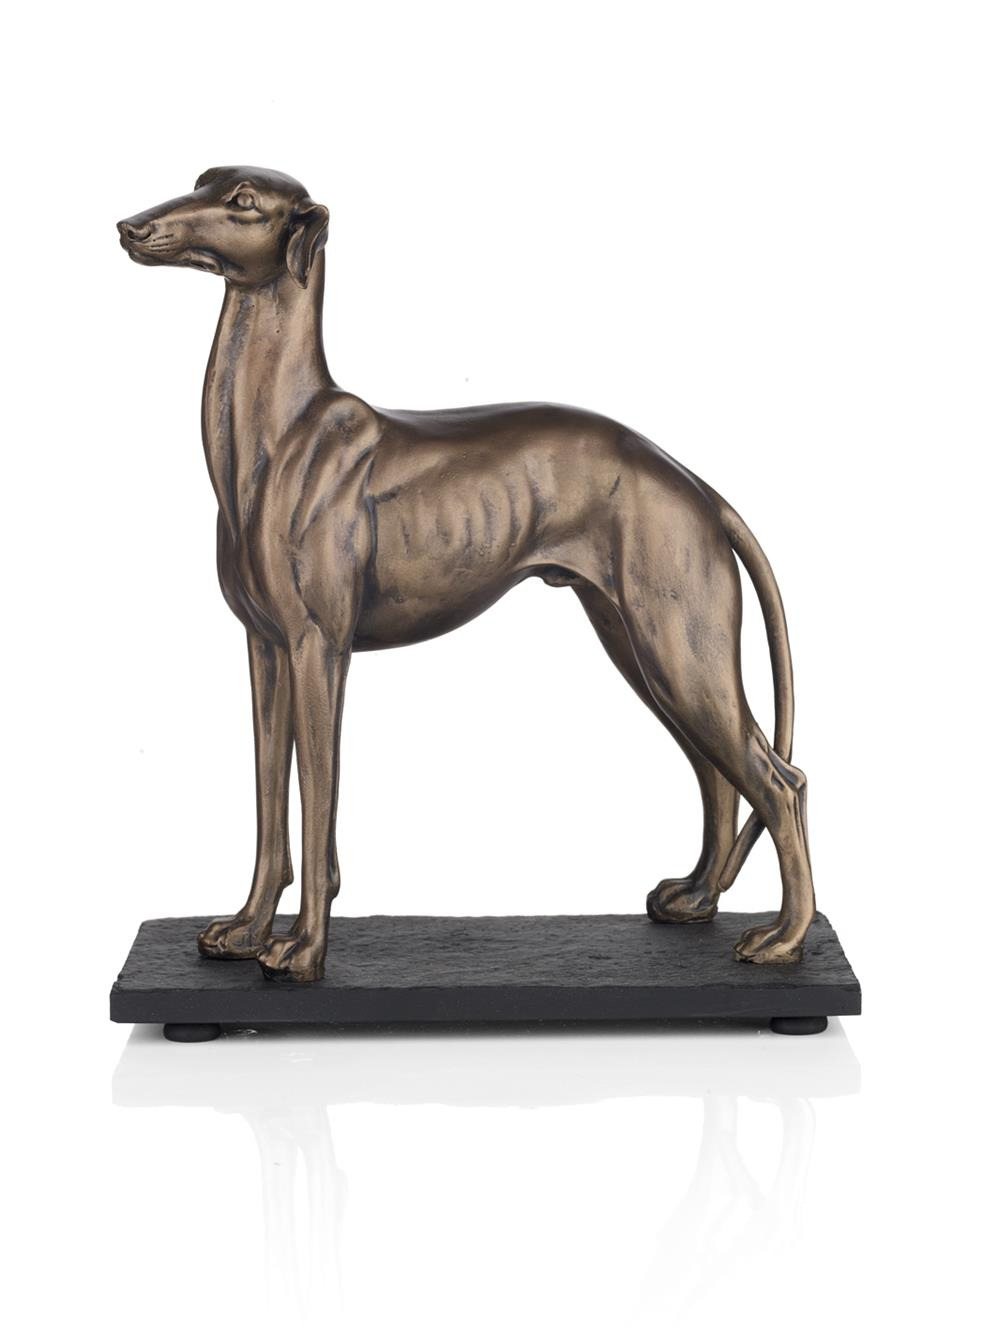 Dar GRE3963- Greyhound Not Specifiedlt ,, Antique Brass